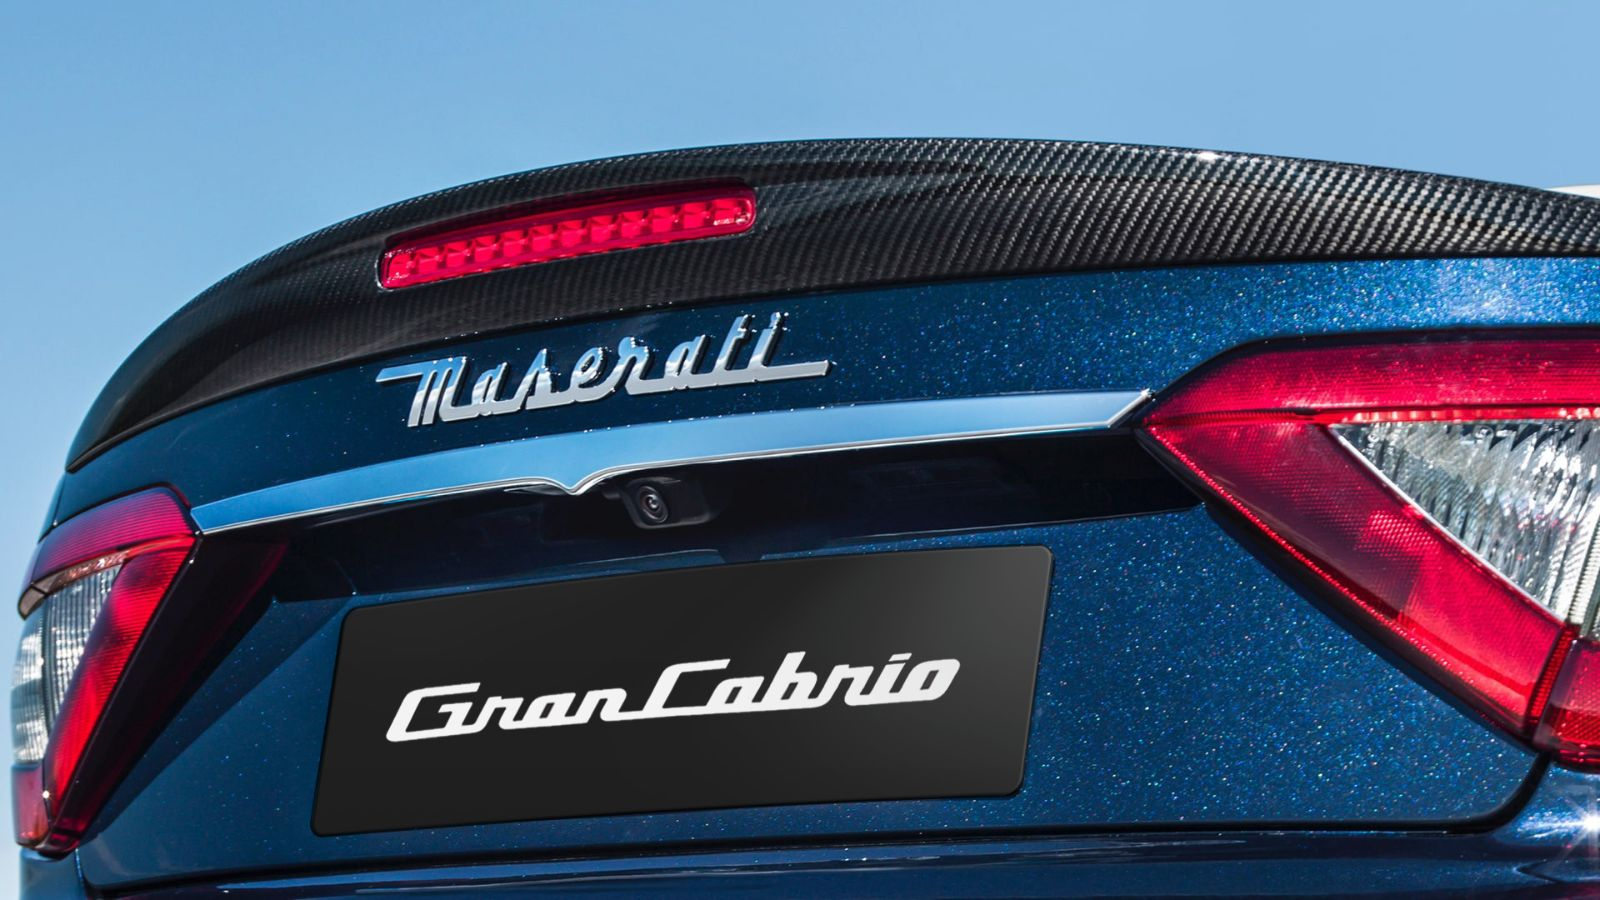 Maserati GranCabrio accessories - exterior carbon package retrofit, spoiler